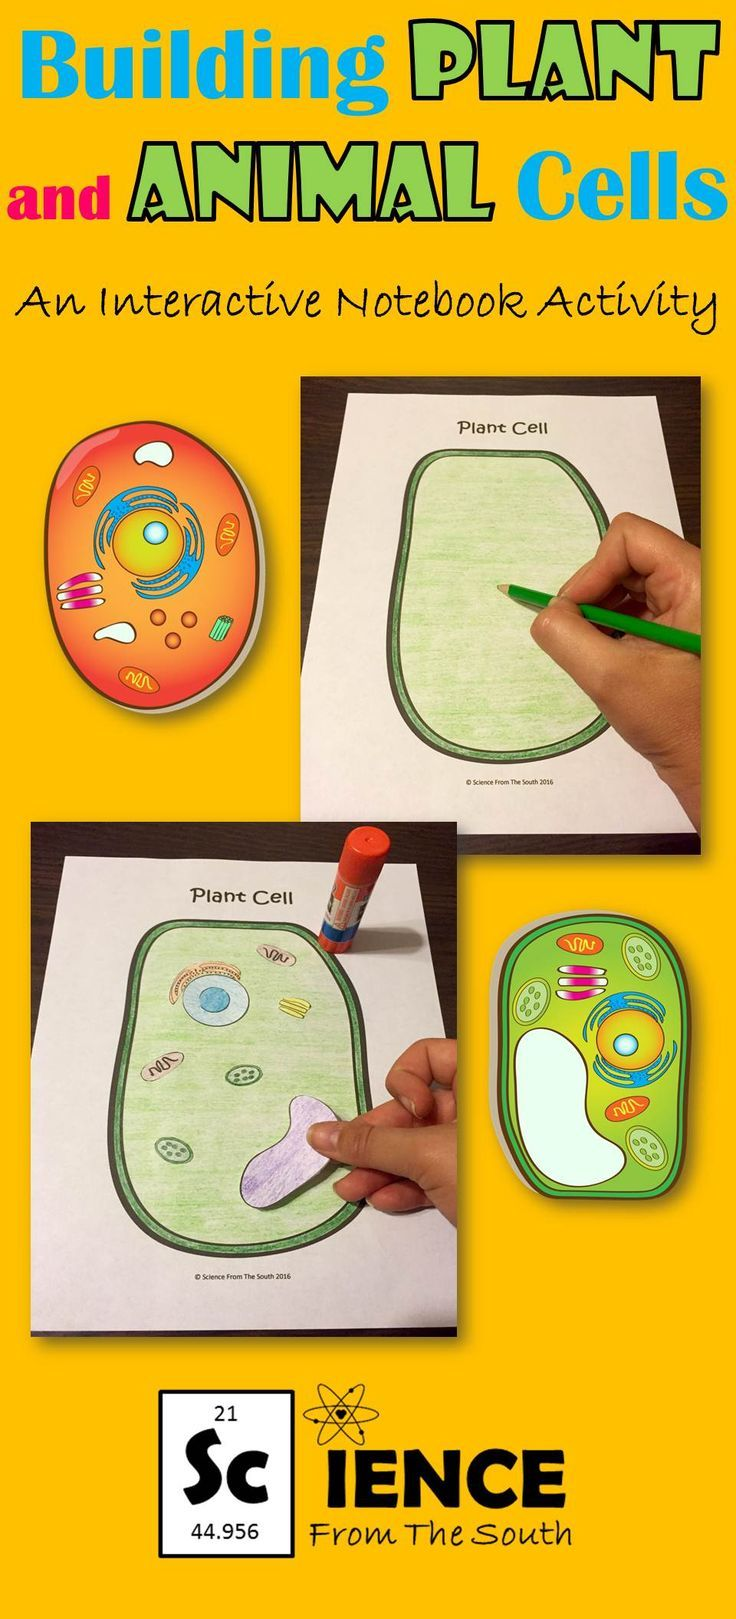 Building Plant and Animal Cells Activity for Middle and